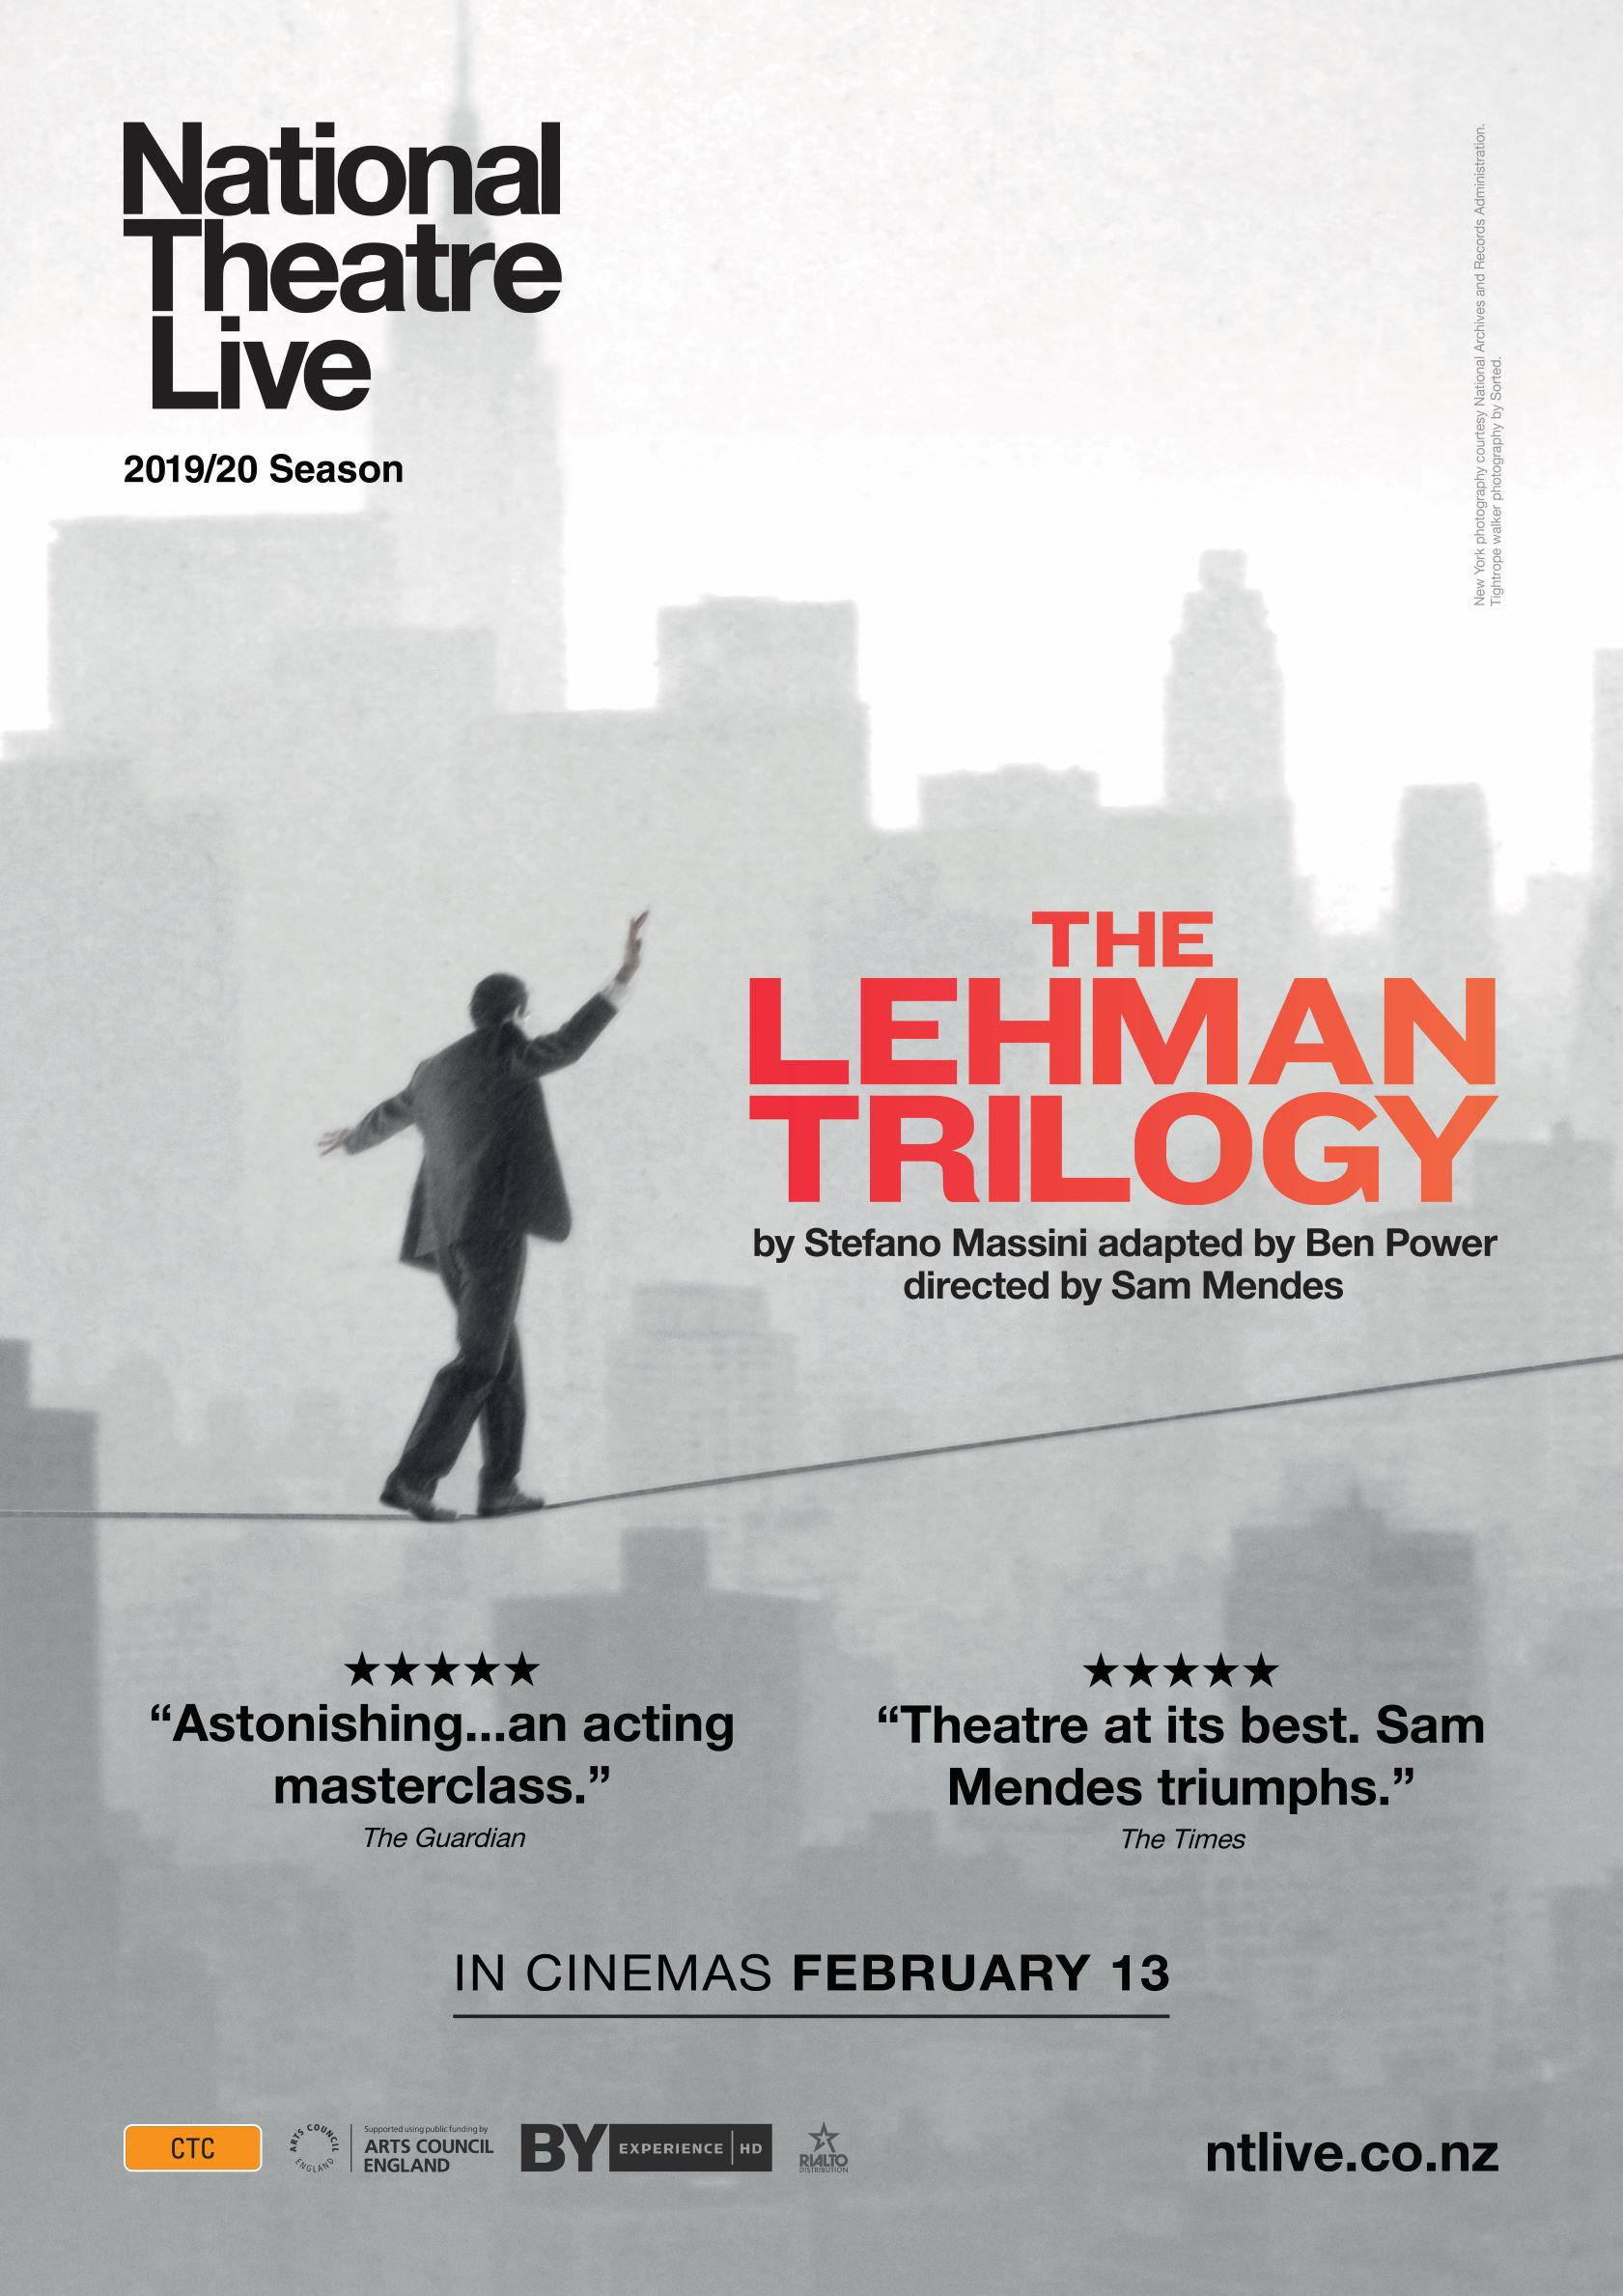 Poster of National Theatre Live: The Lehman Trilogy